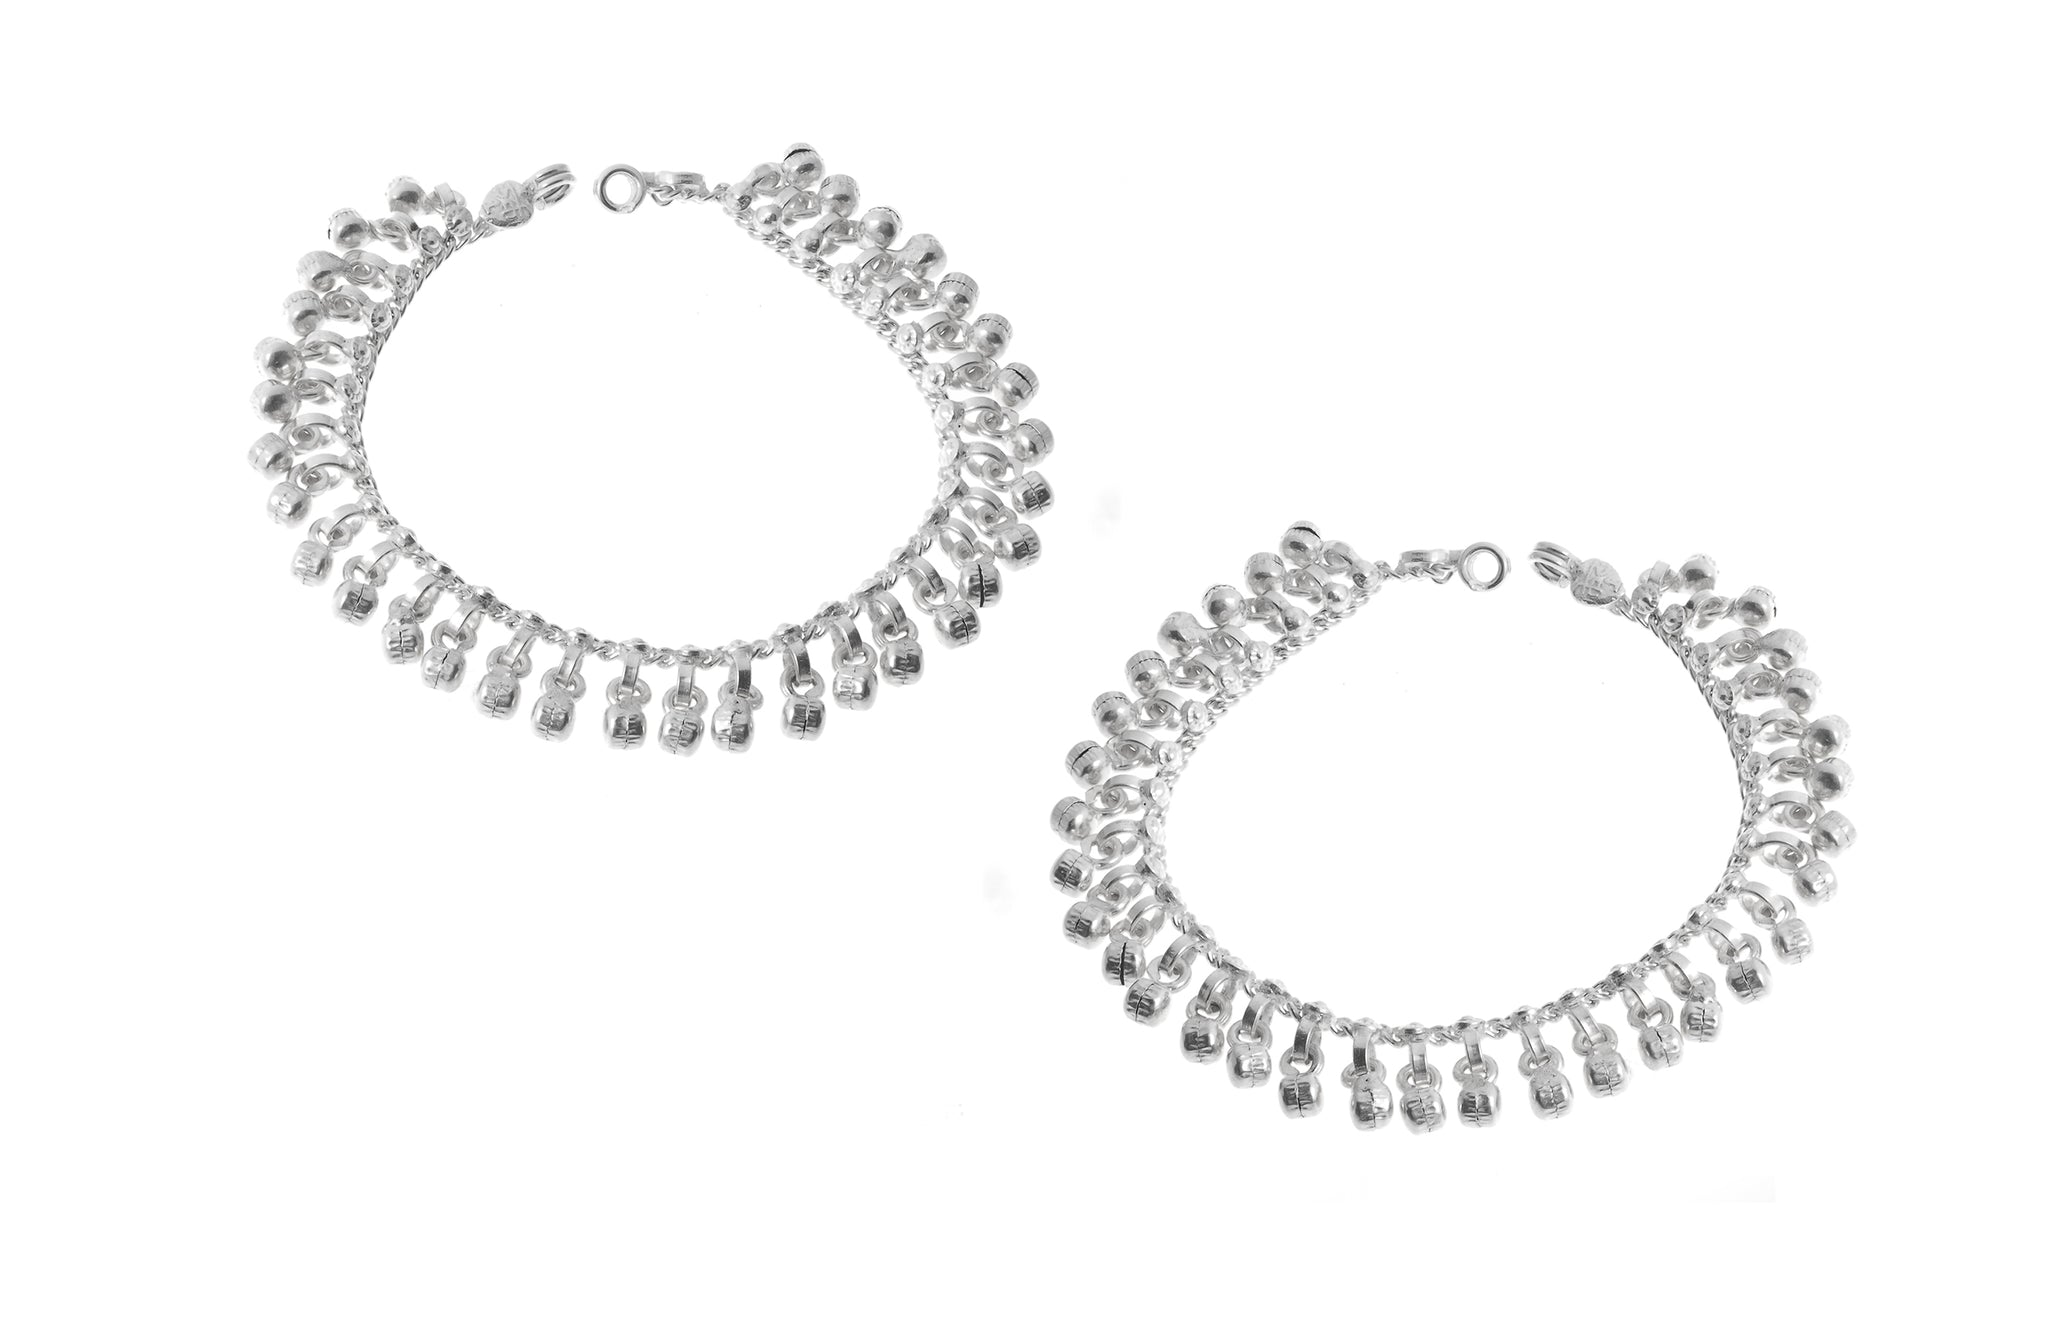 Sterling Silver Anklets with Ghughri Bell Charms for Children (A-7147) - Pair